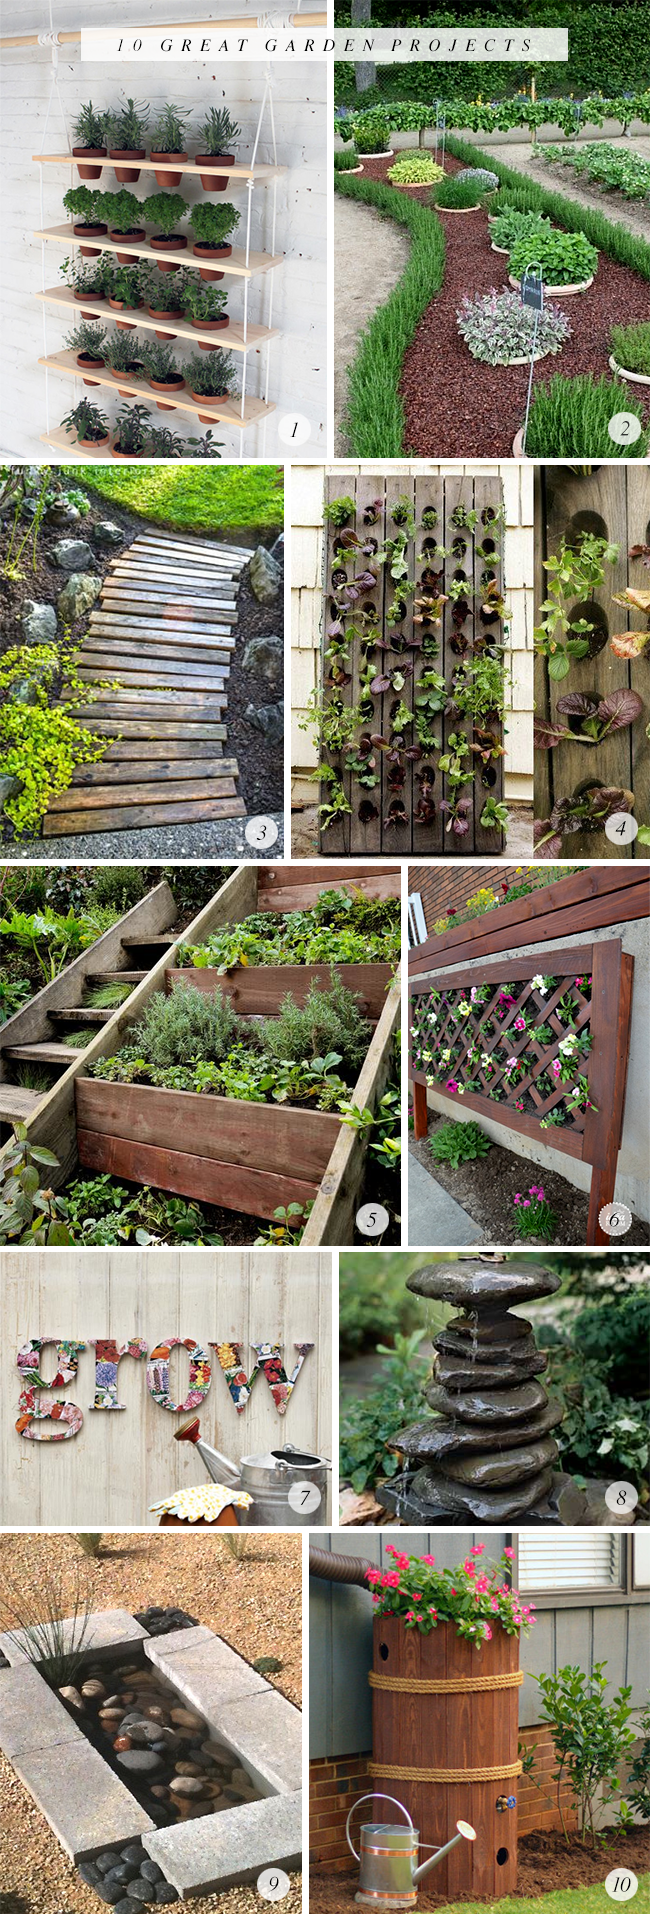 10 Great Garden DIY Projects (via Bubby and Bean)